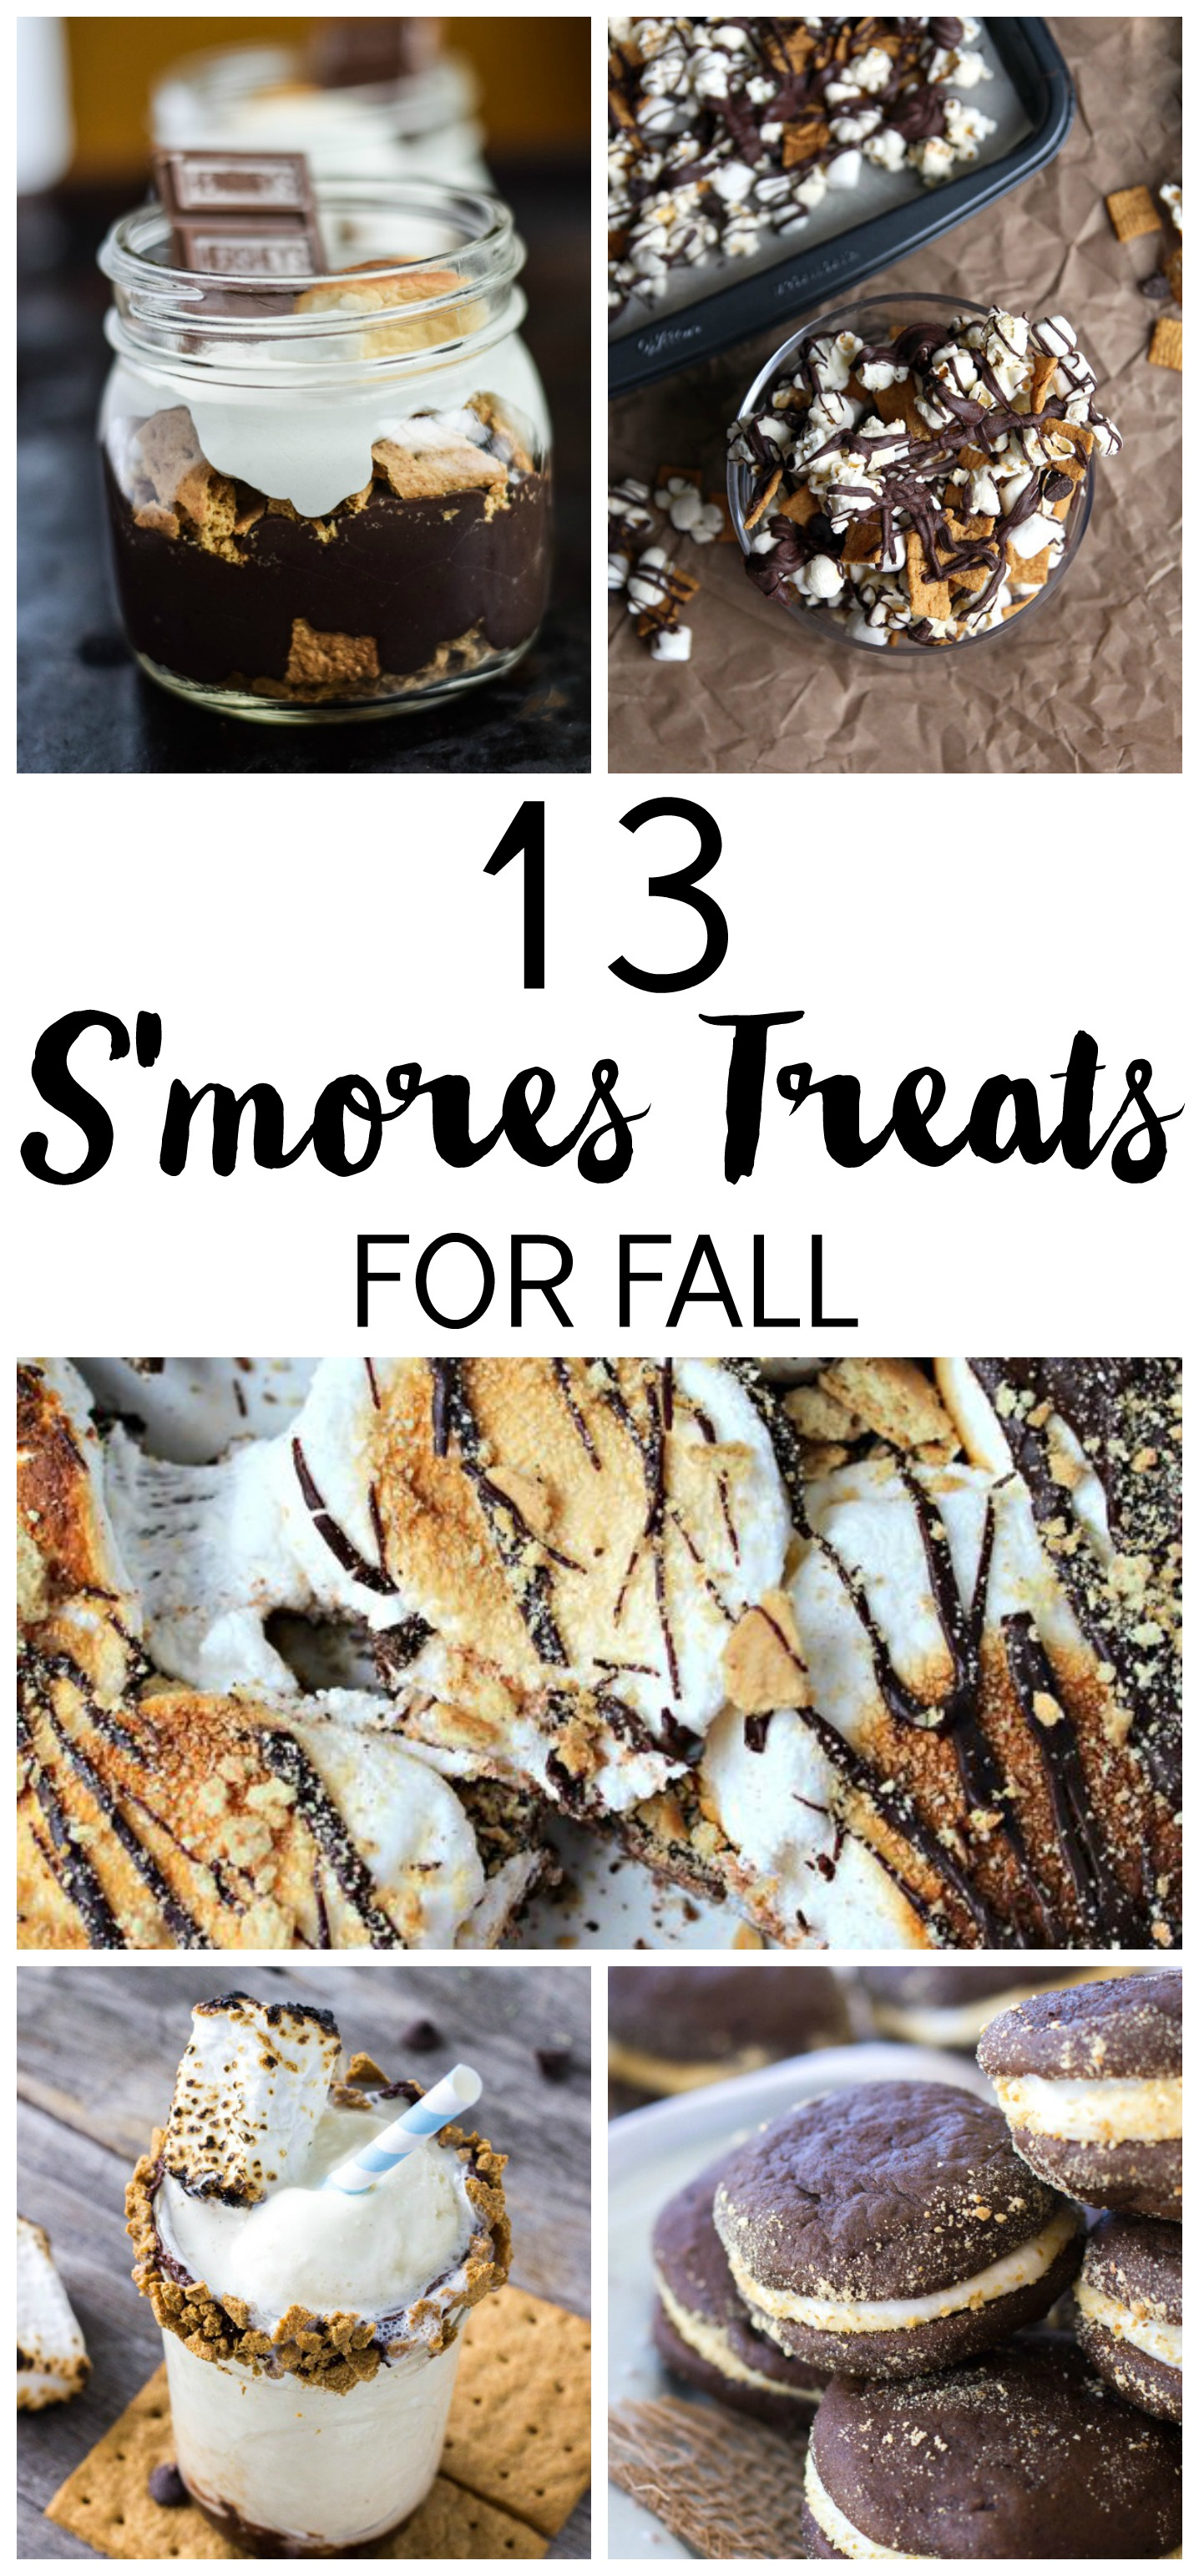 S'mores aren't just for the campfire! Here are 13 incredible S'mores Treats to enjoy this Fall. There are so many ways to incorporate the marshmallow, chocolate and graham cracker flavors. From ice cream to whoopie pies to popcorn!